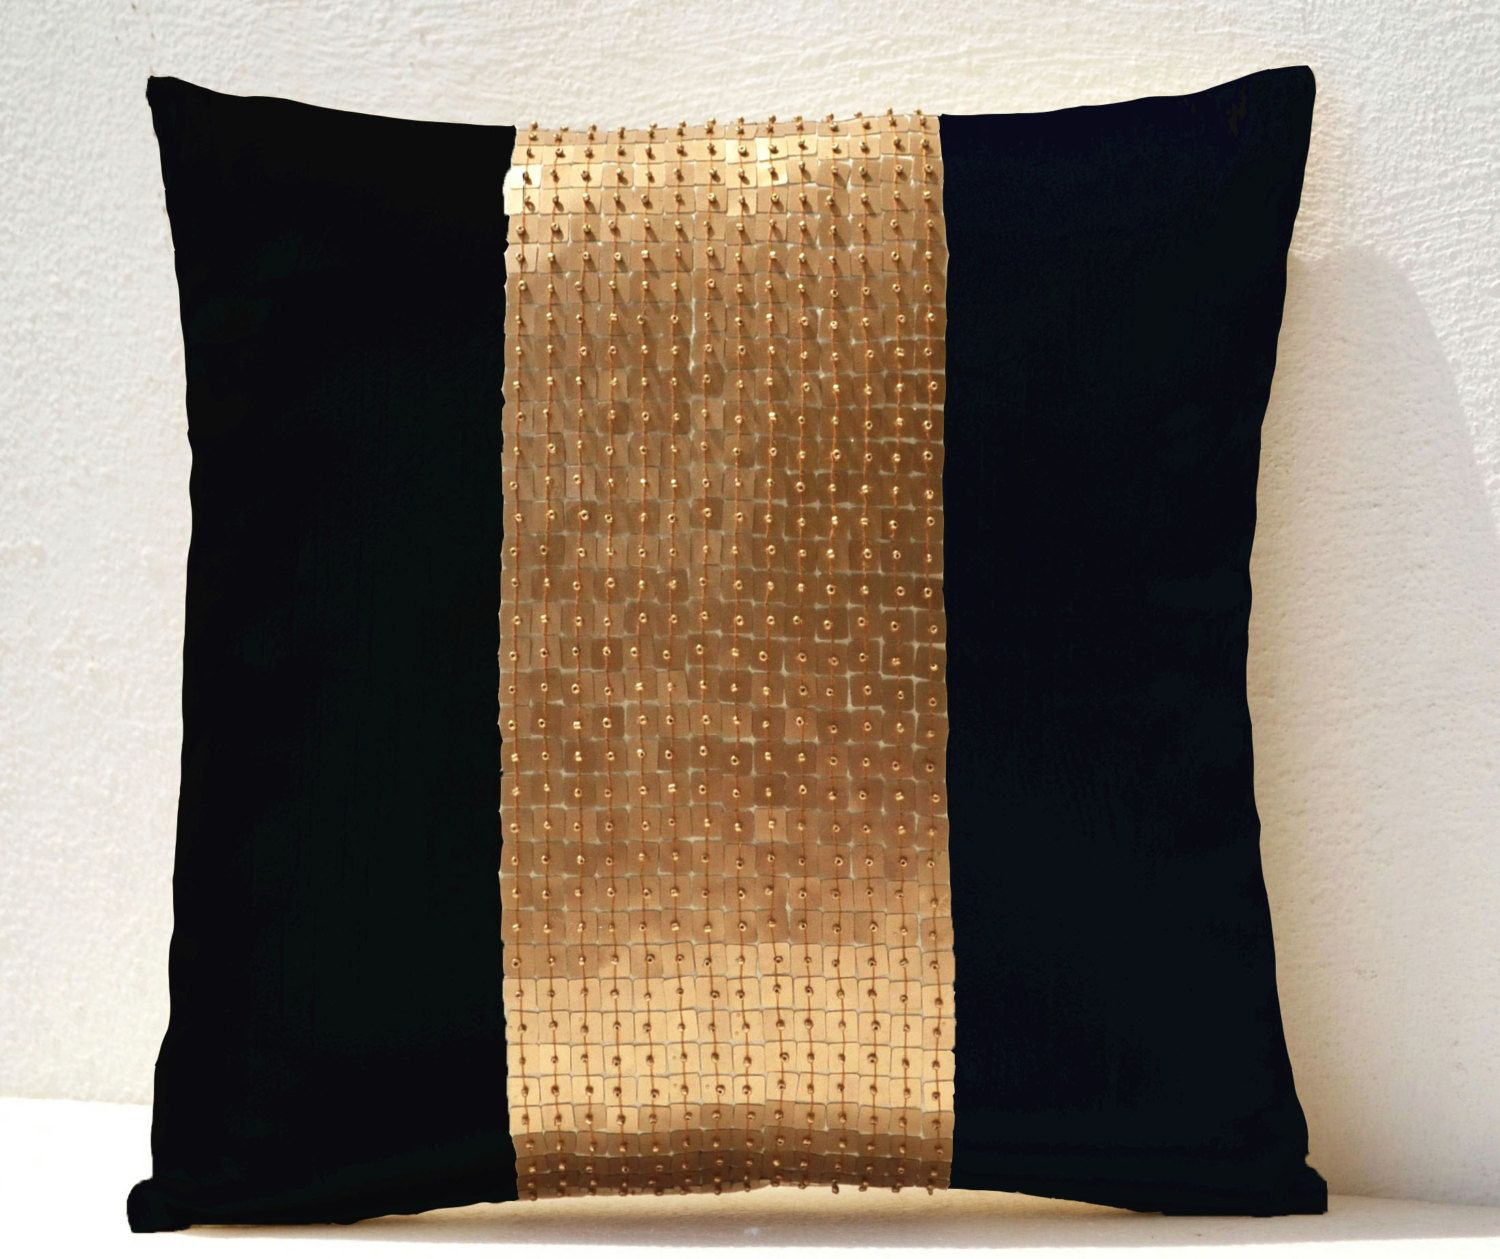 gold sofa throw pillows bay area newark ca pillow covers black color block in silk and